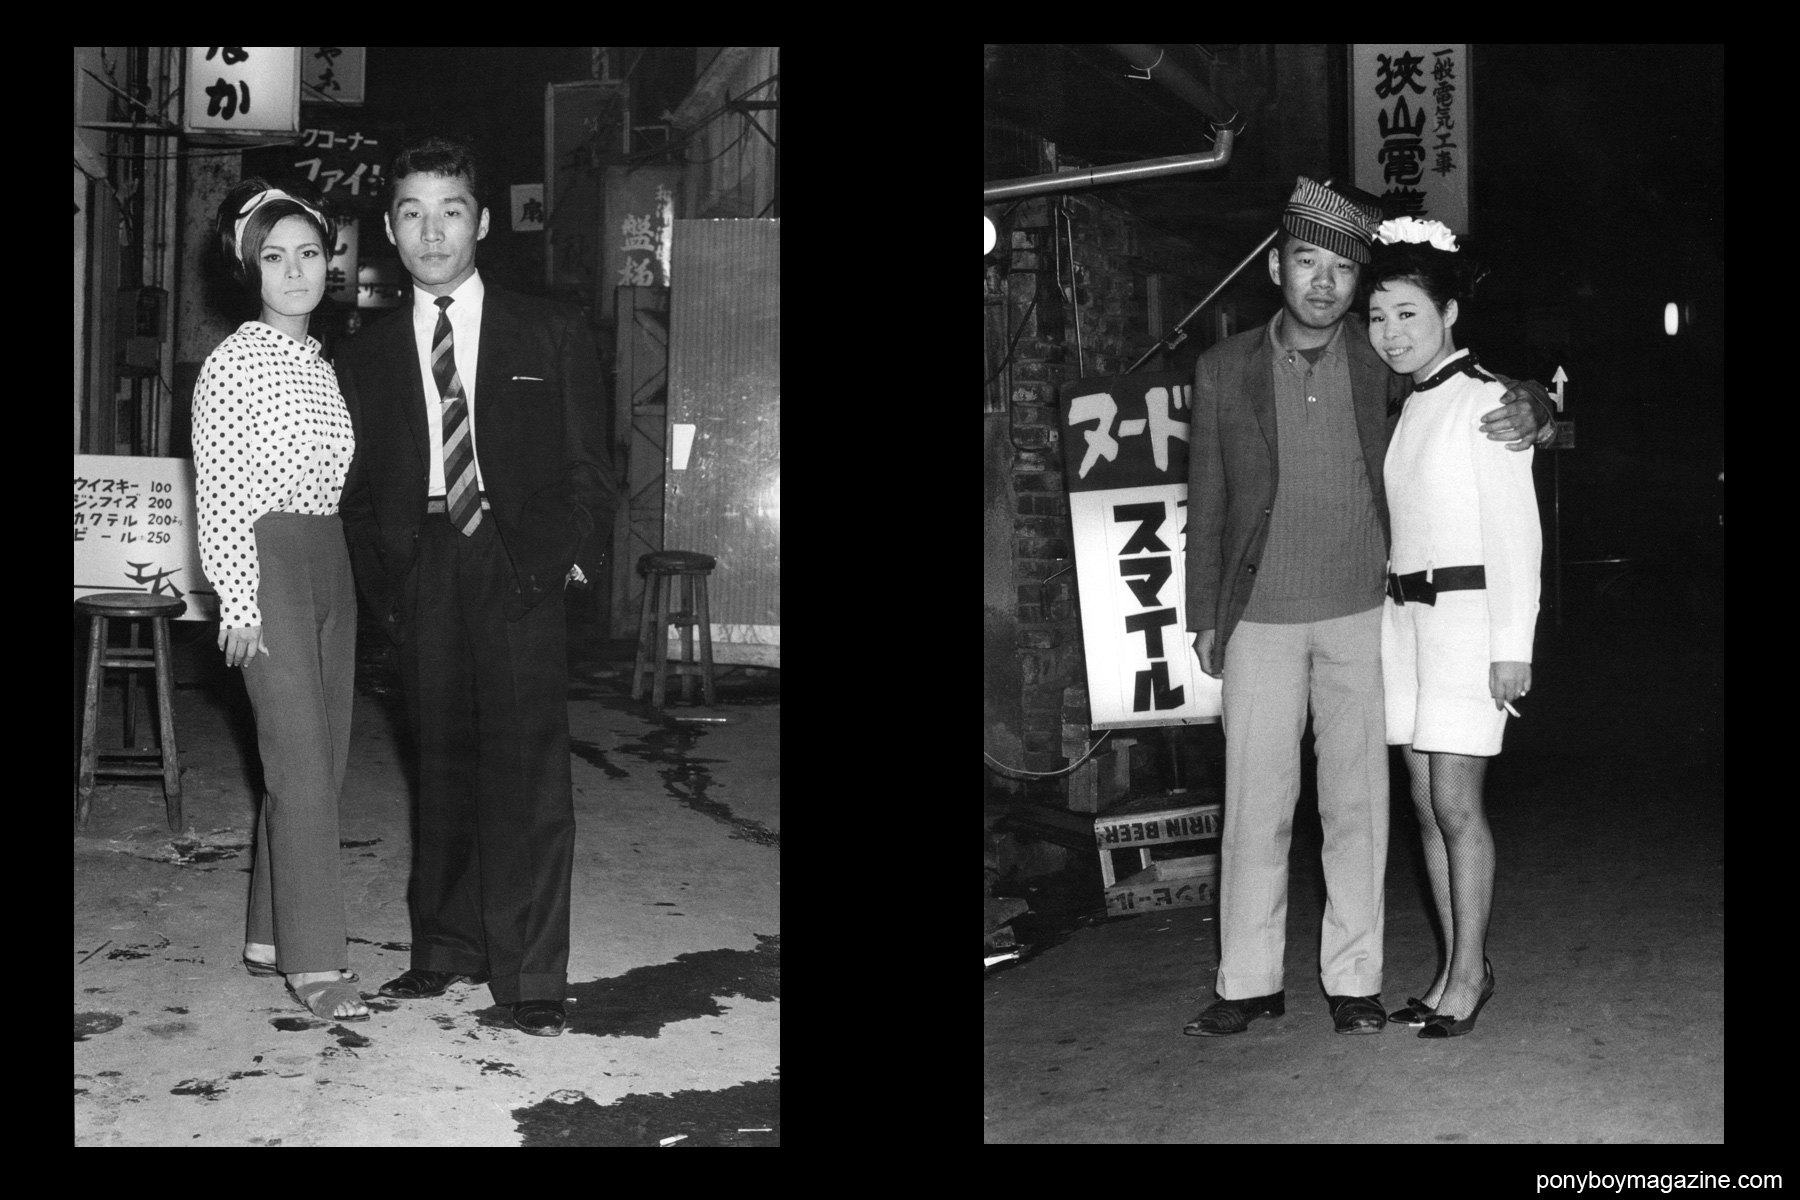 Japanese couples in 1960's Tokyo photographed by Watanabe Katsumi.